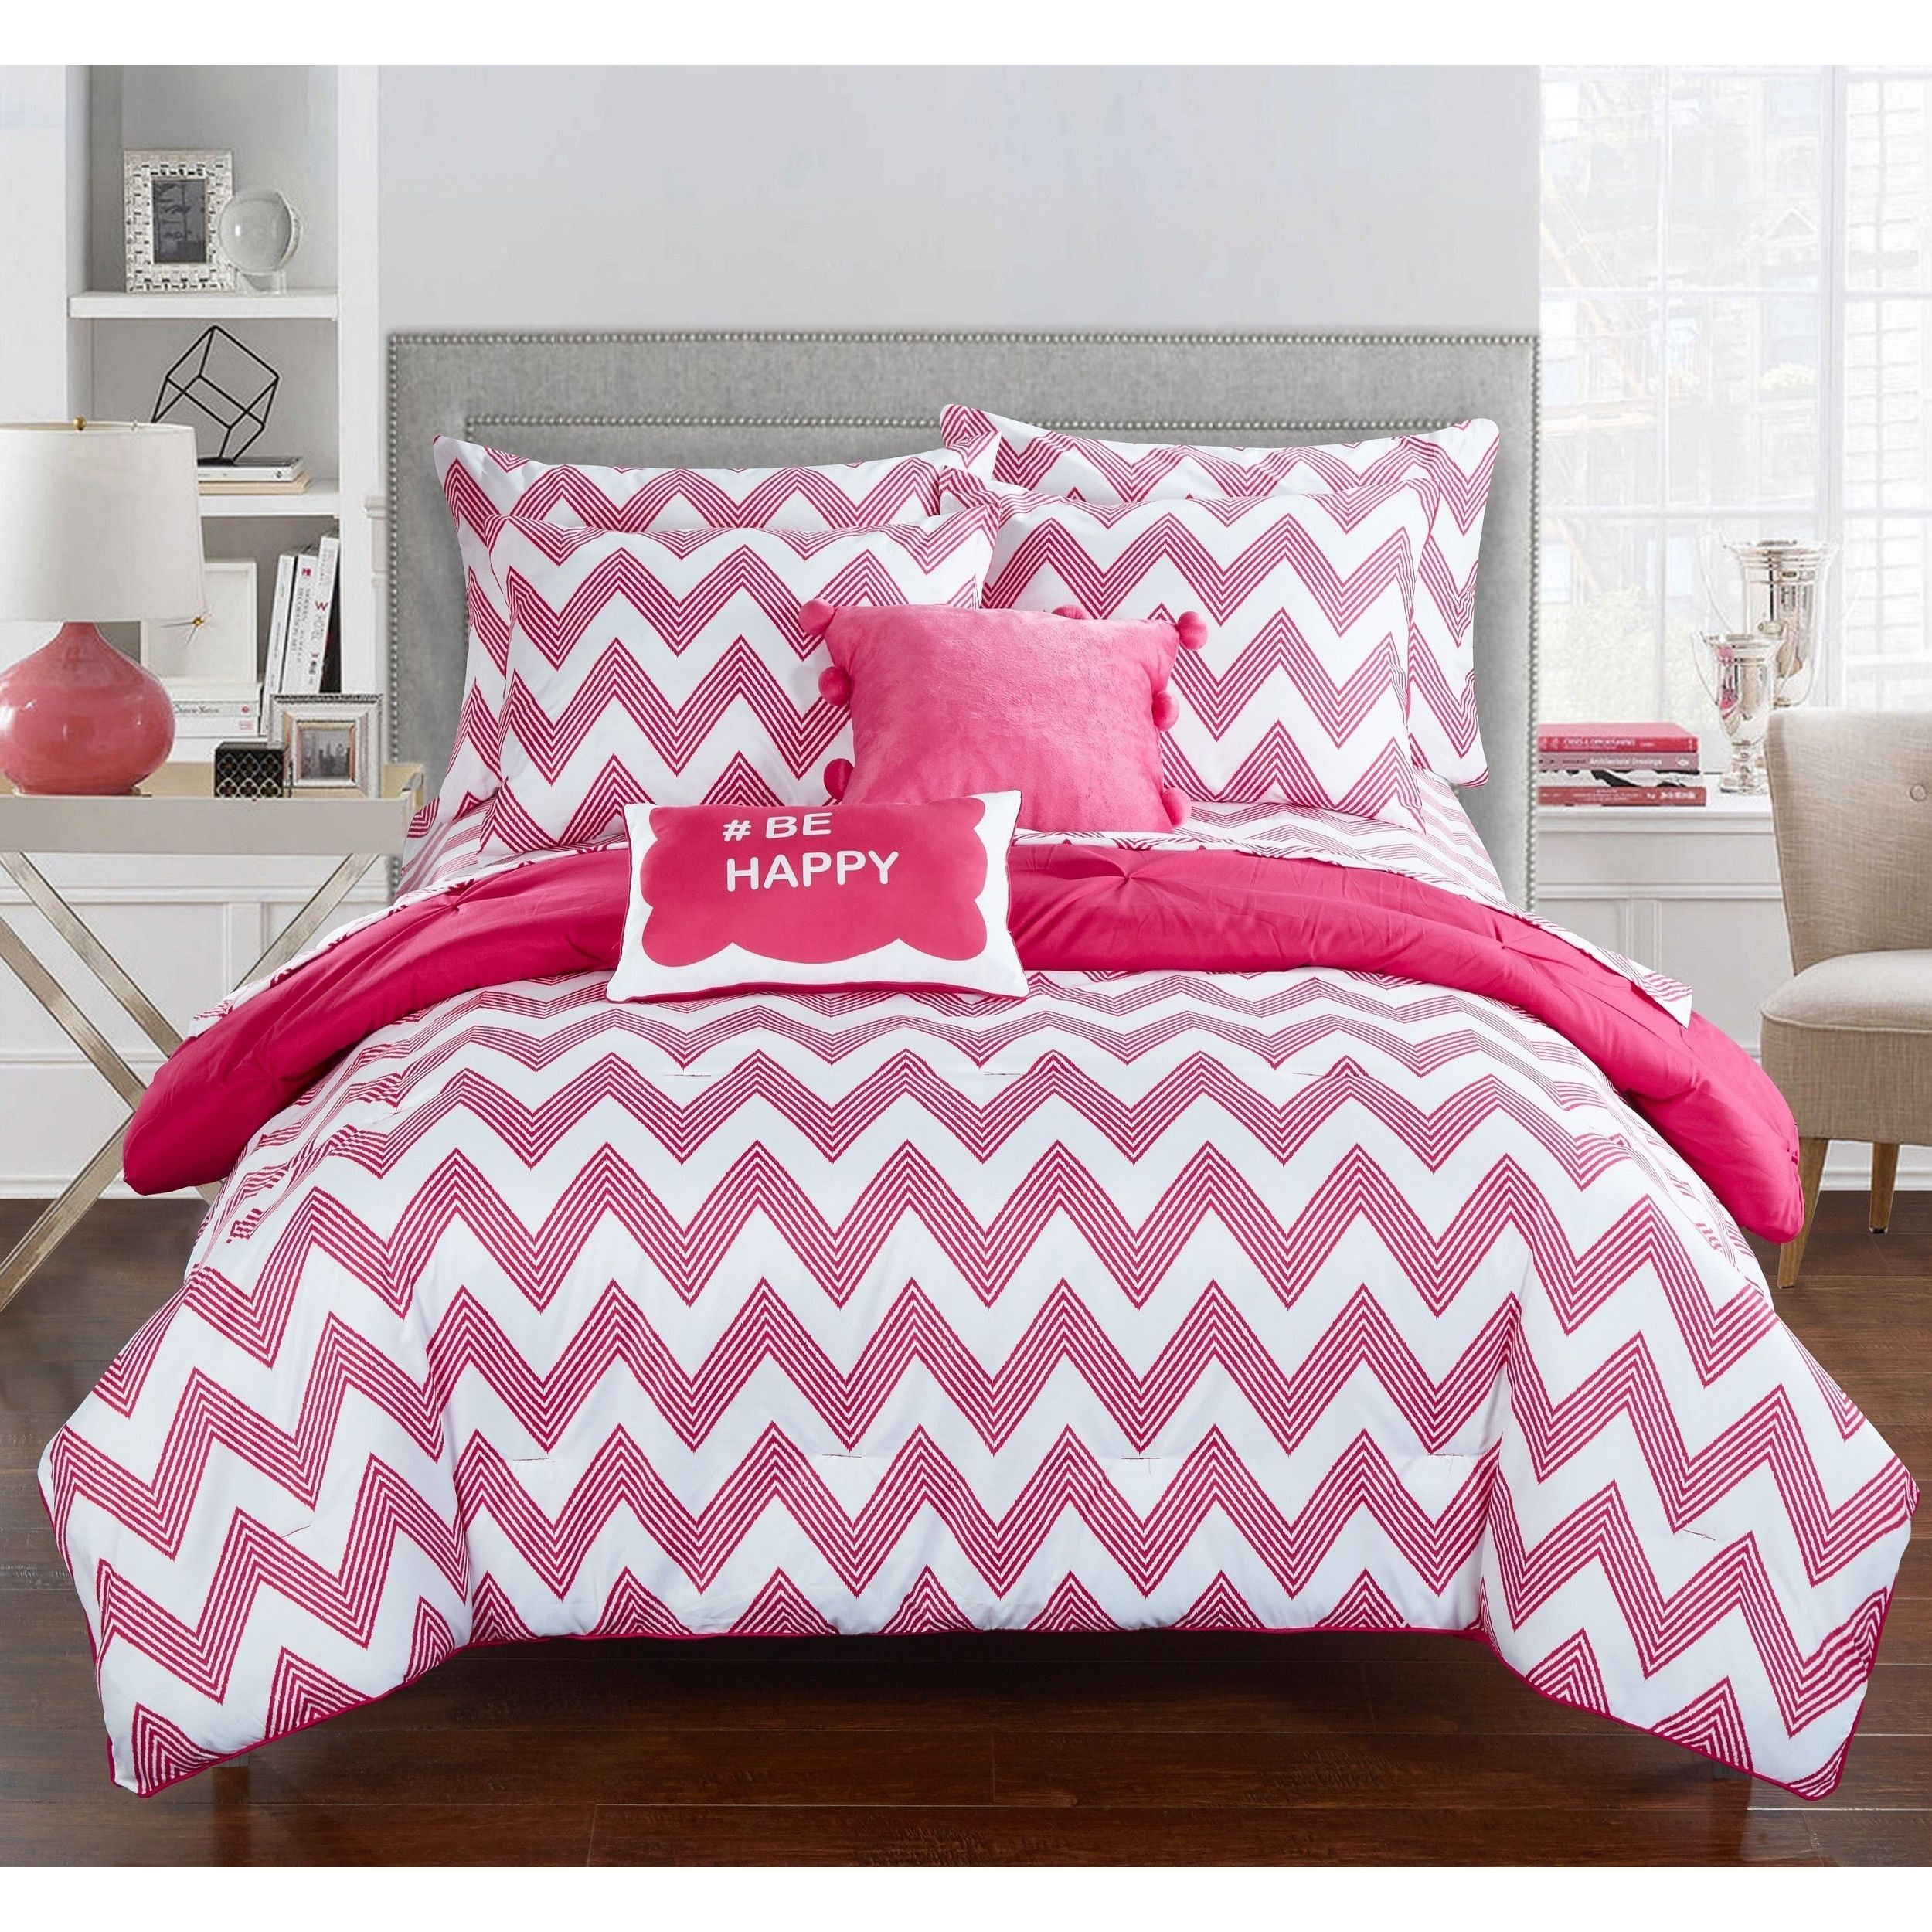 Chic Home Foxville Fuchsia 9Piece Bed in a Bag with Sheet